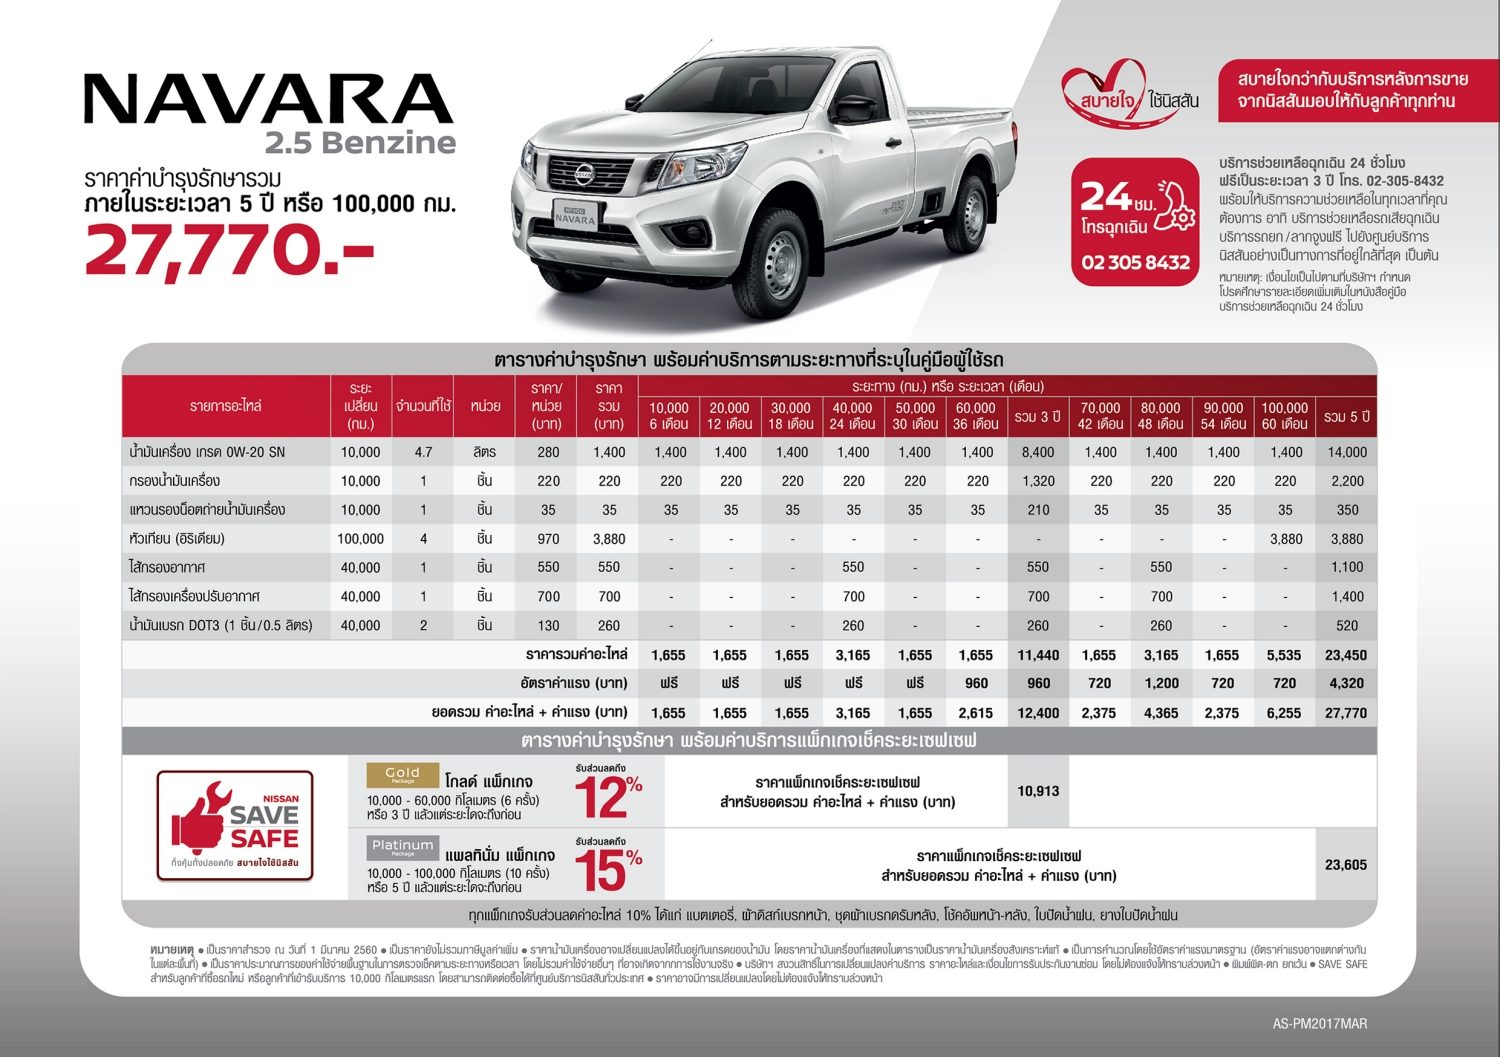 Navara Maintenance Cost